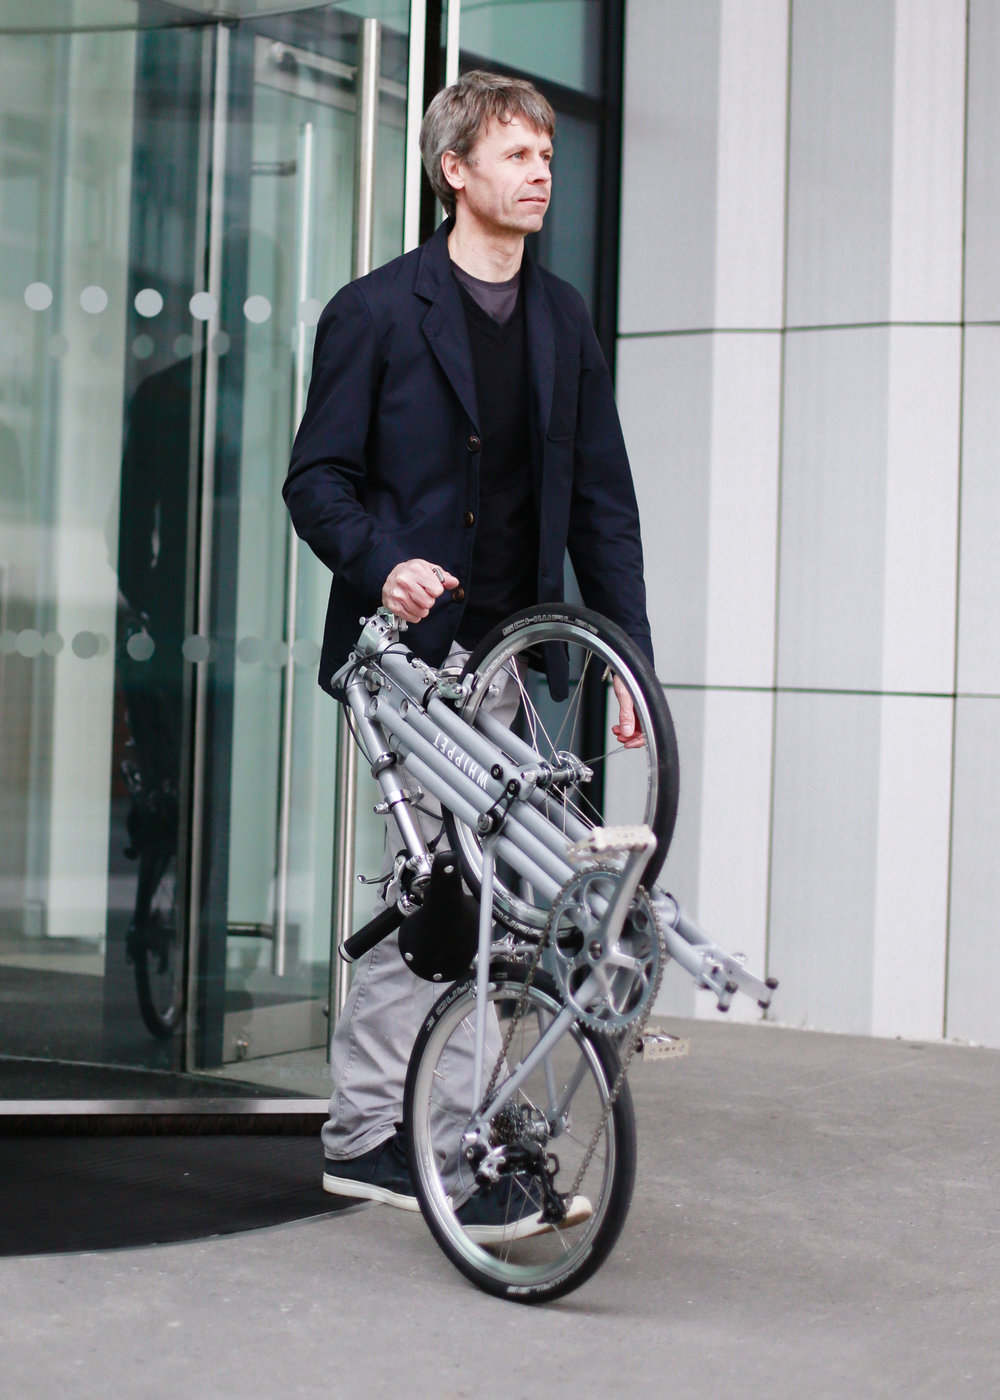 Whippet Bicycle - British made folding bike